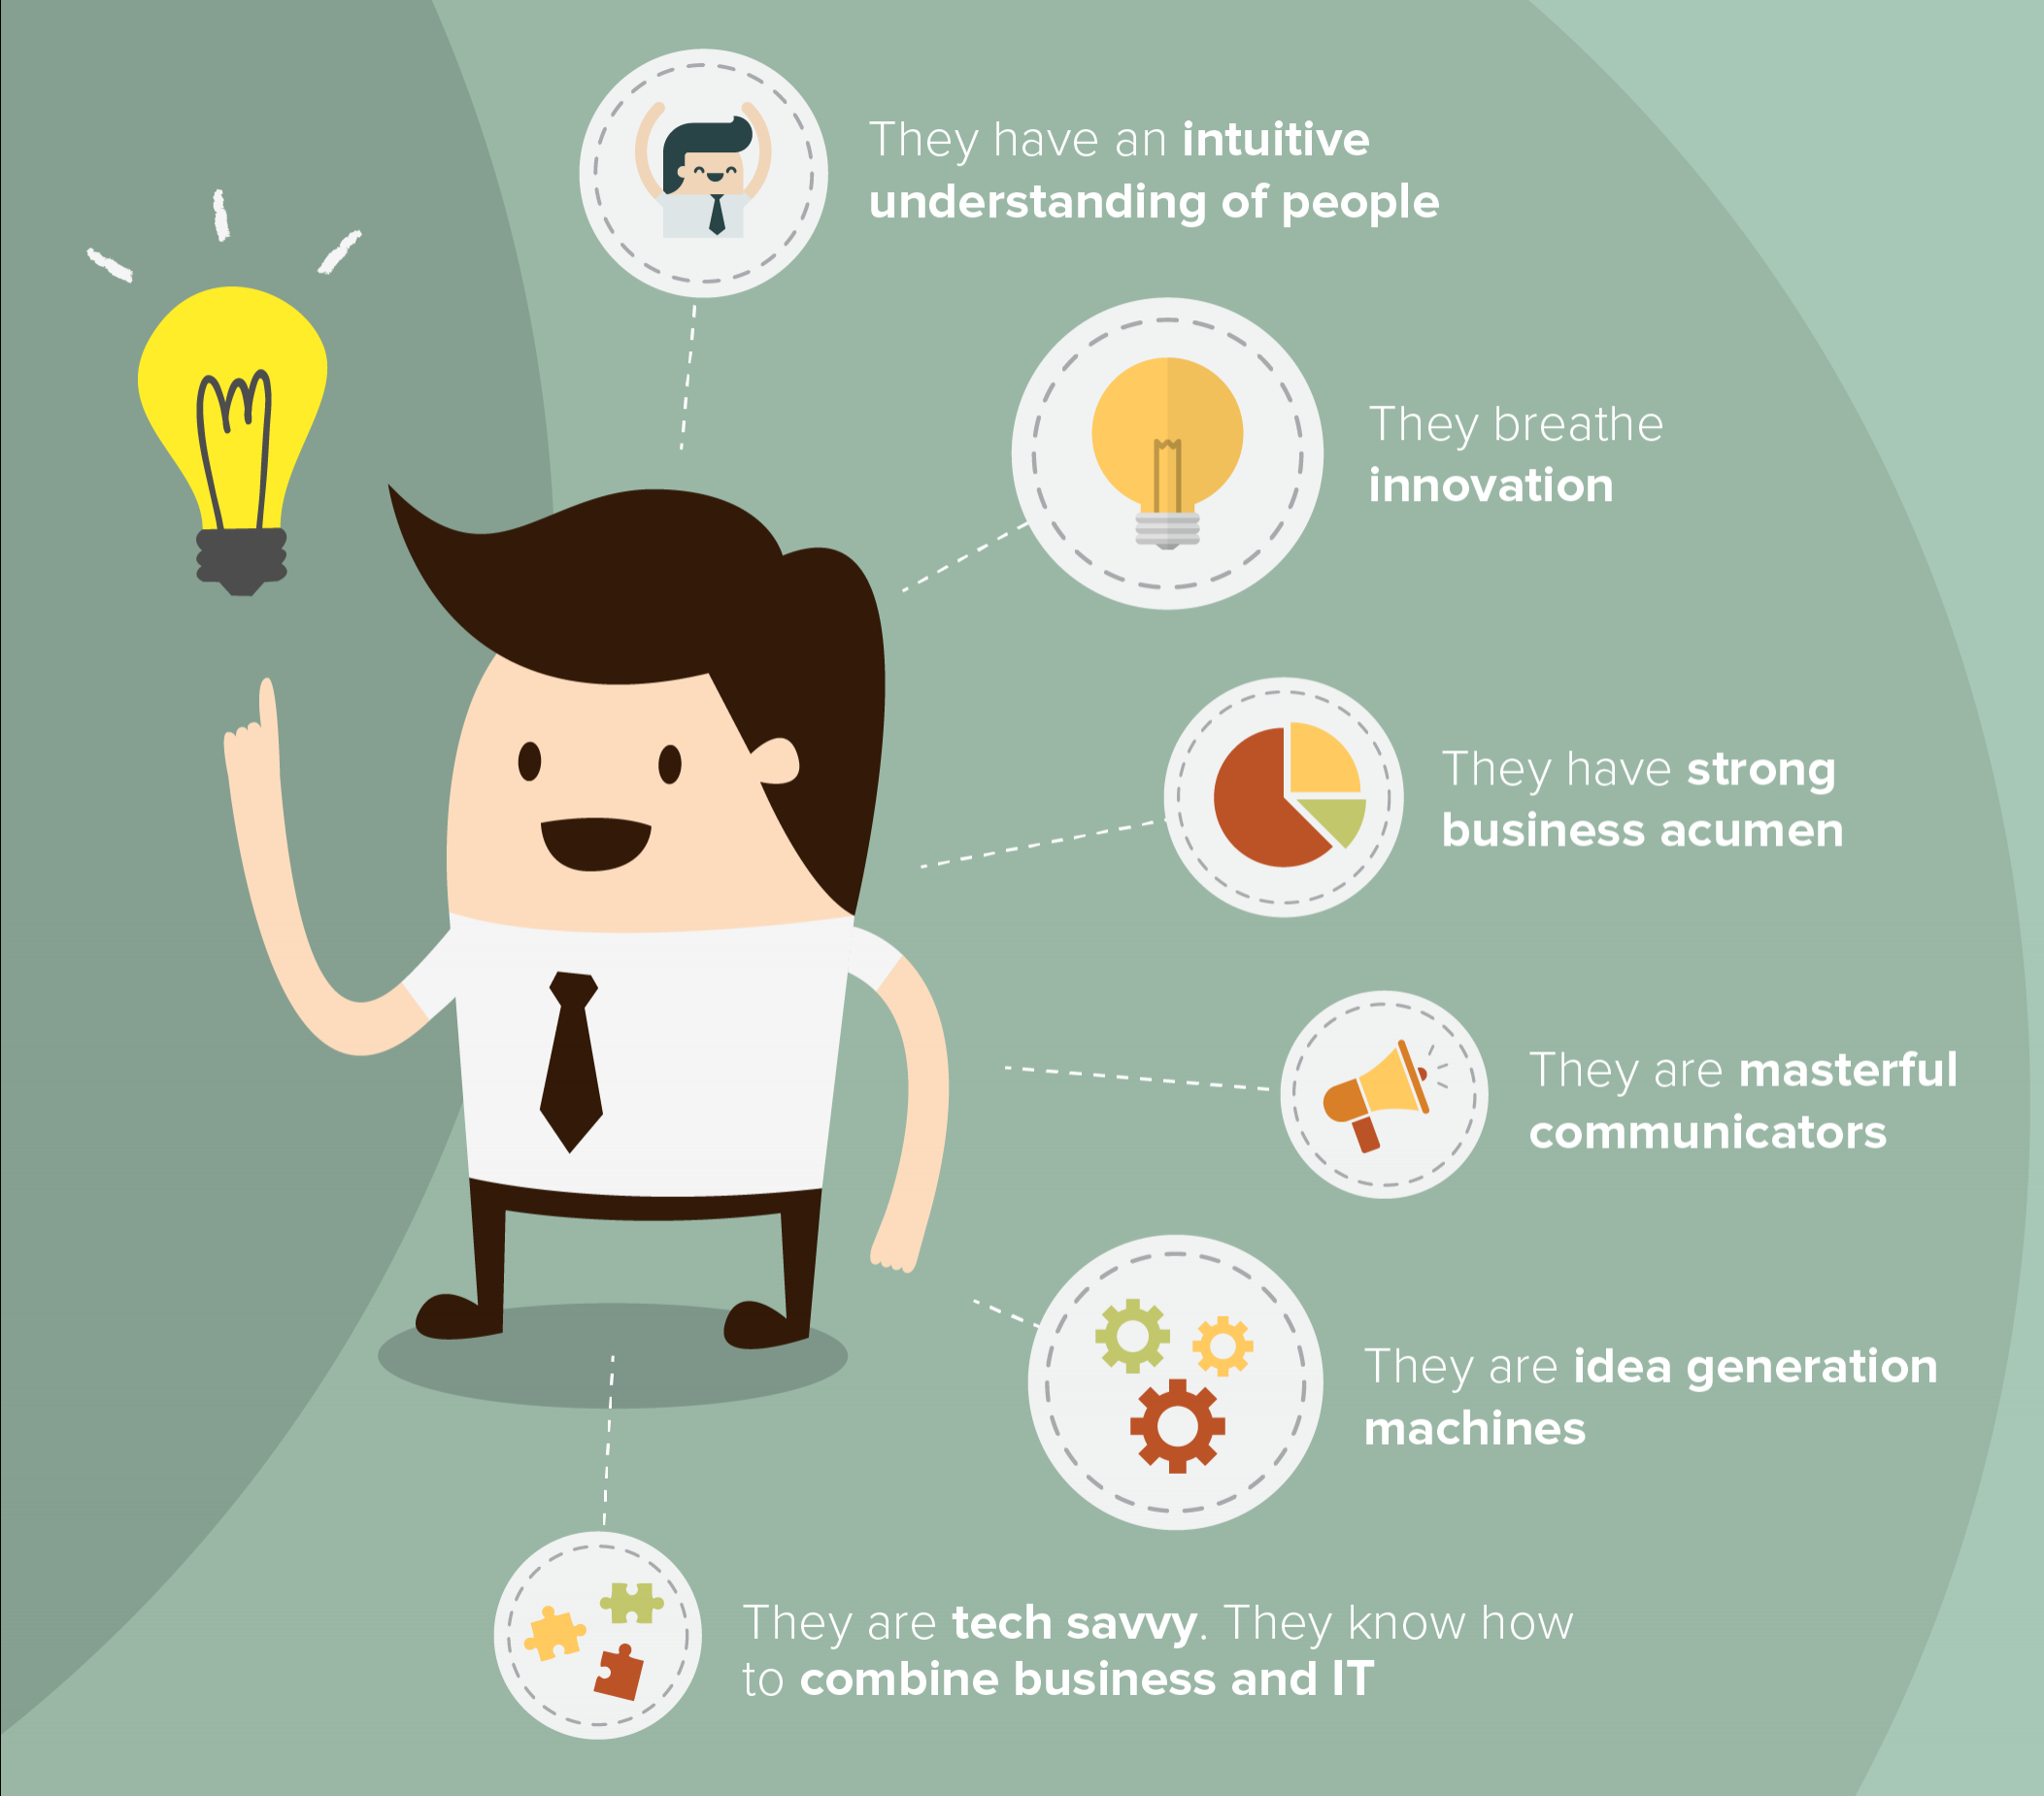 chief_innovation_officer_infographic-309146-edited-436446-edited.png